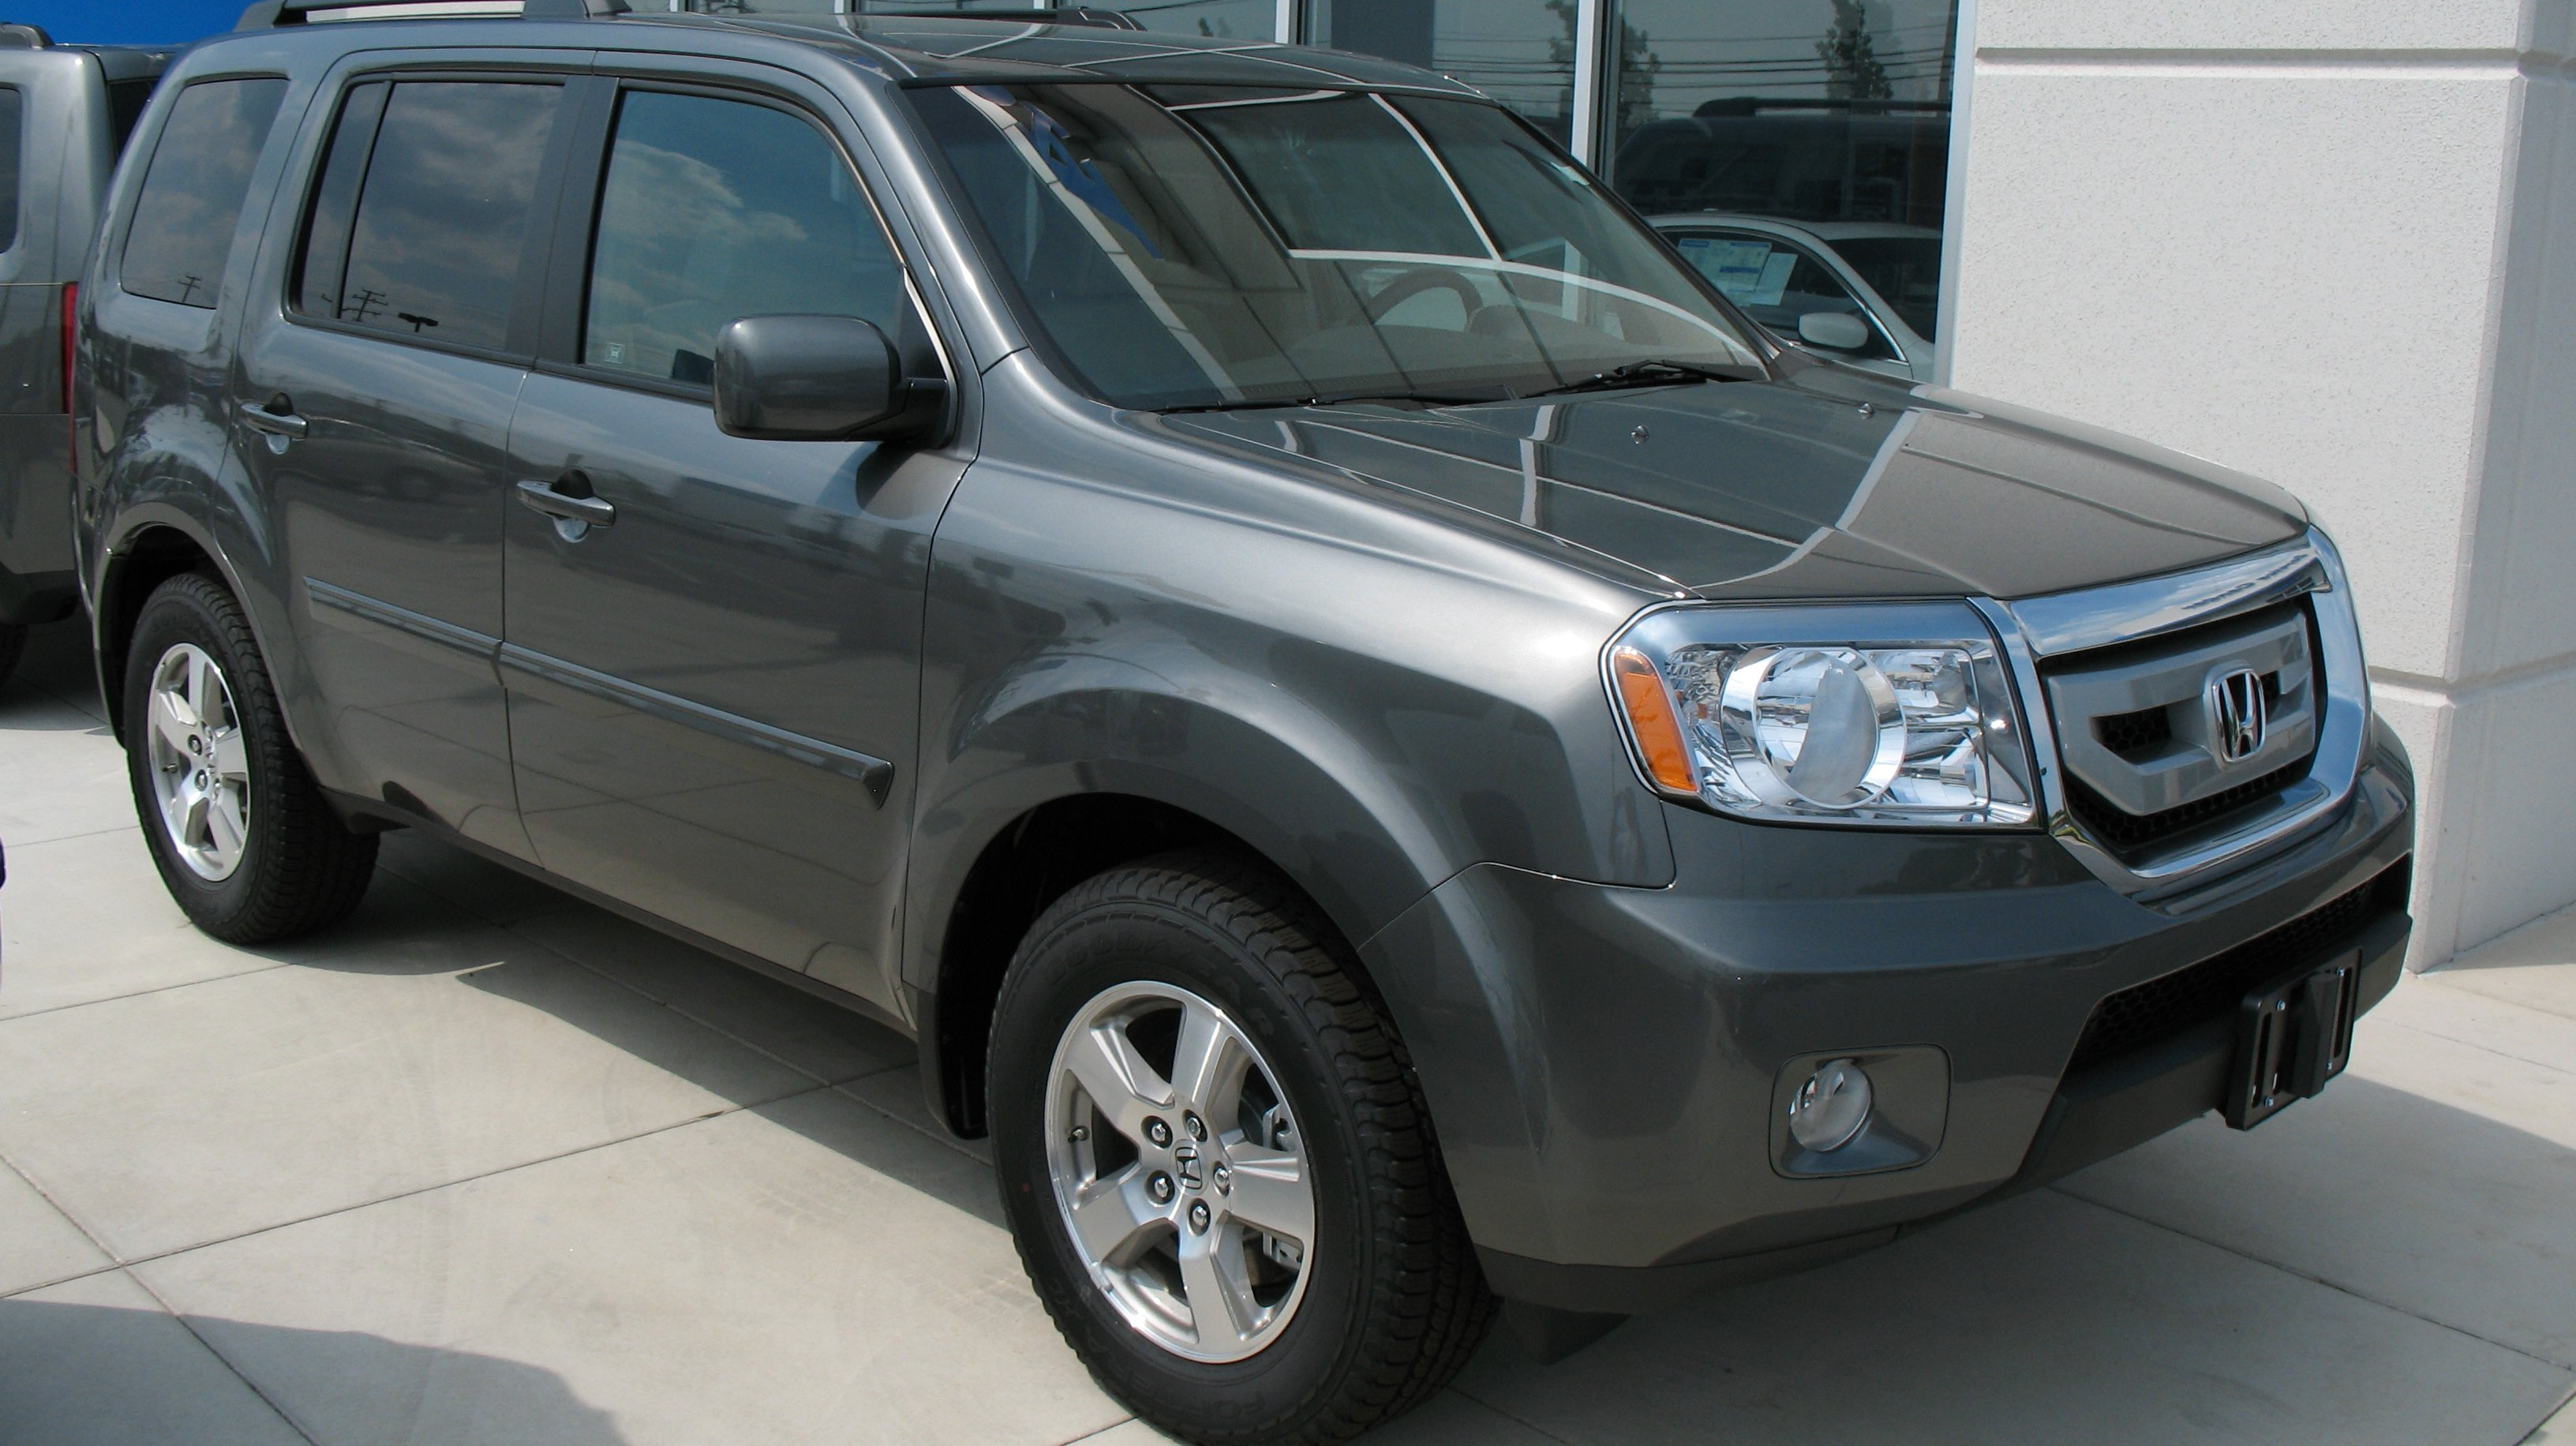 2008 Honda Pilot ii  pictures information and specs  Auto